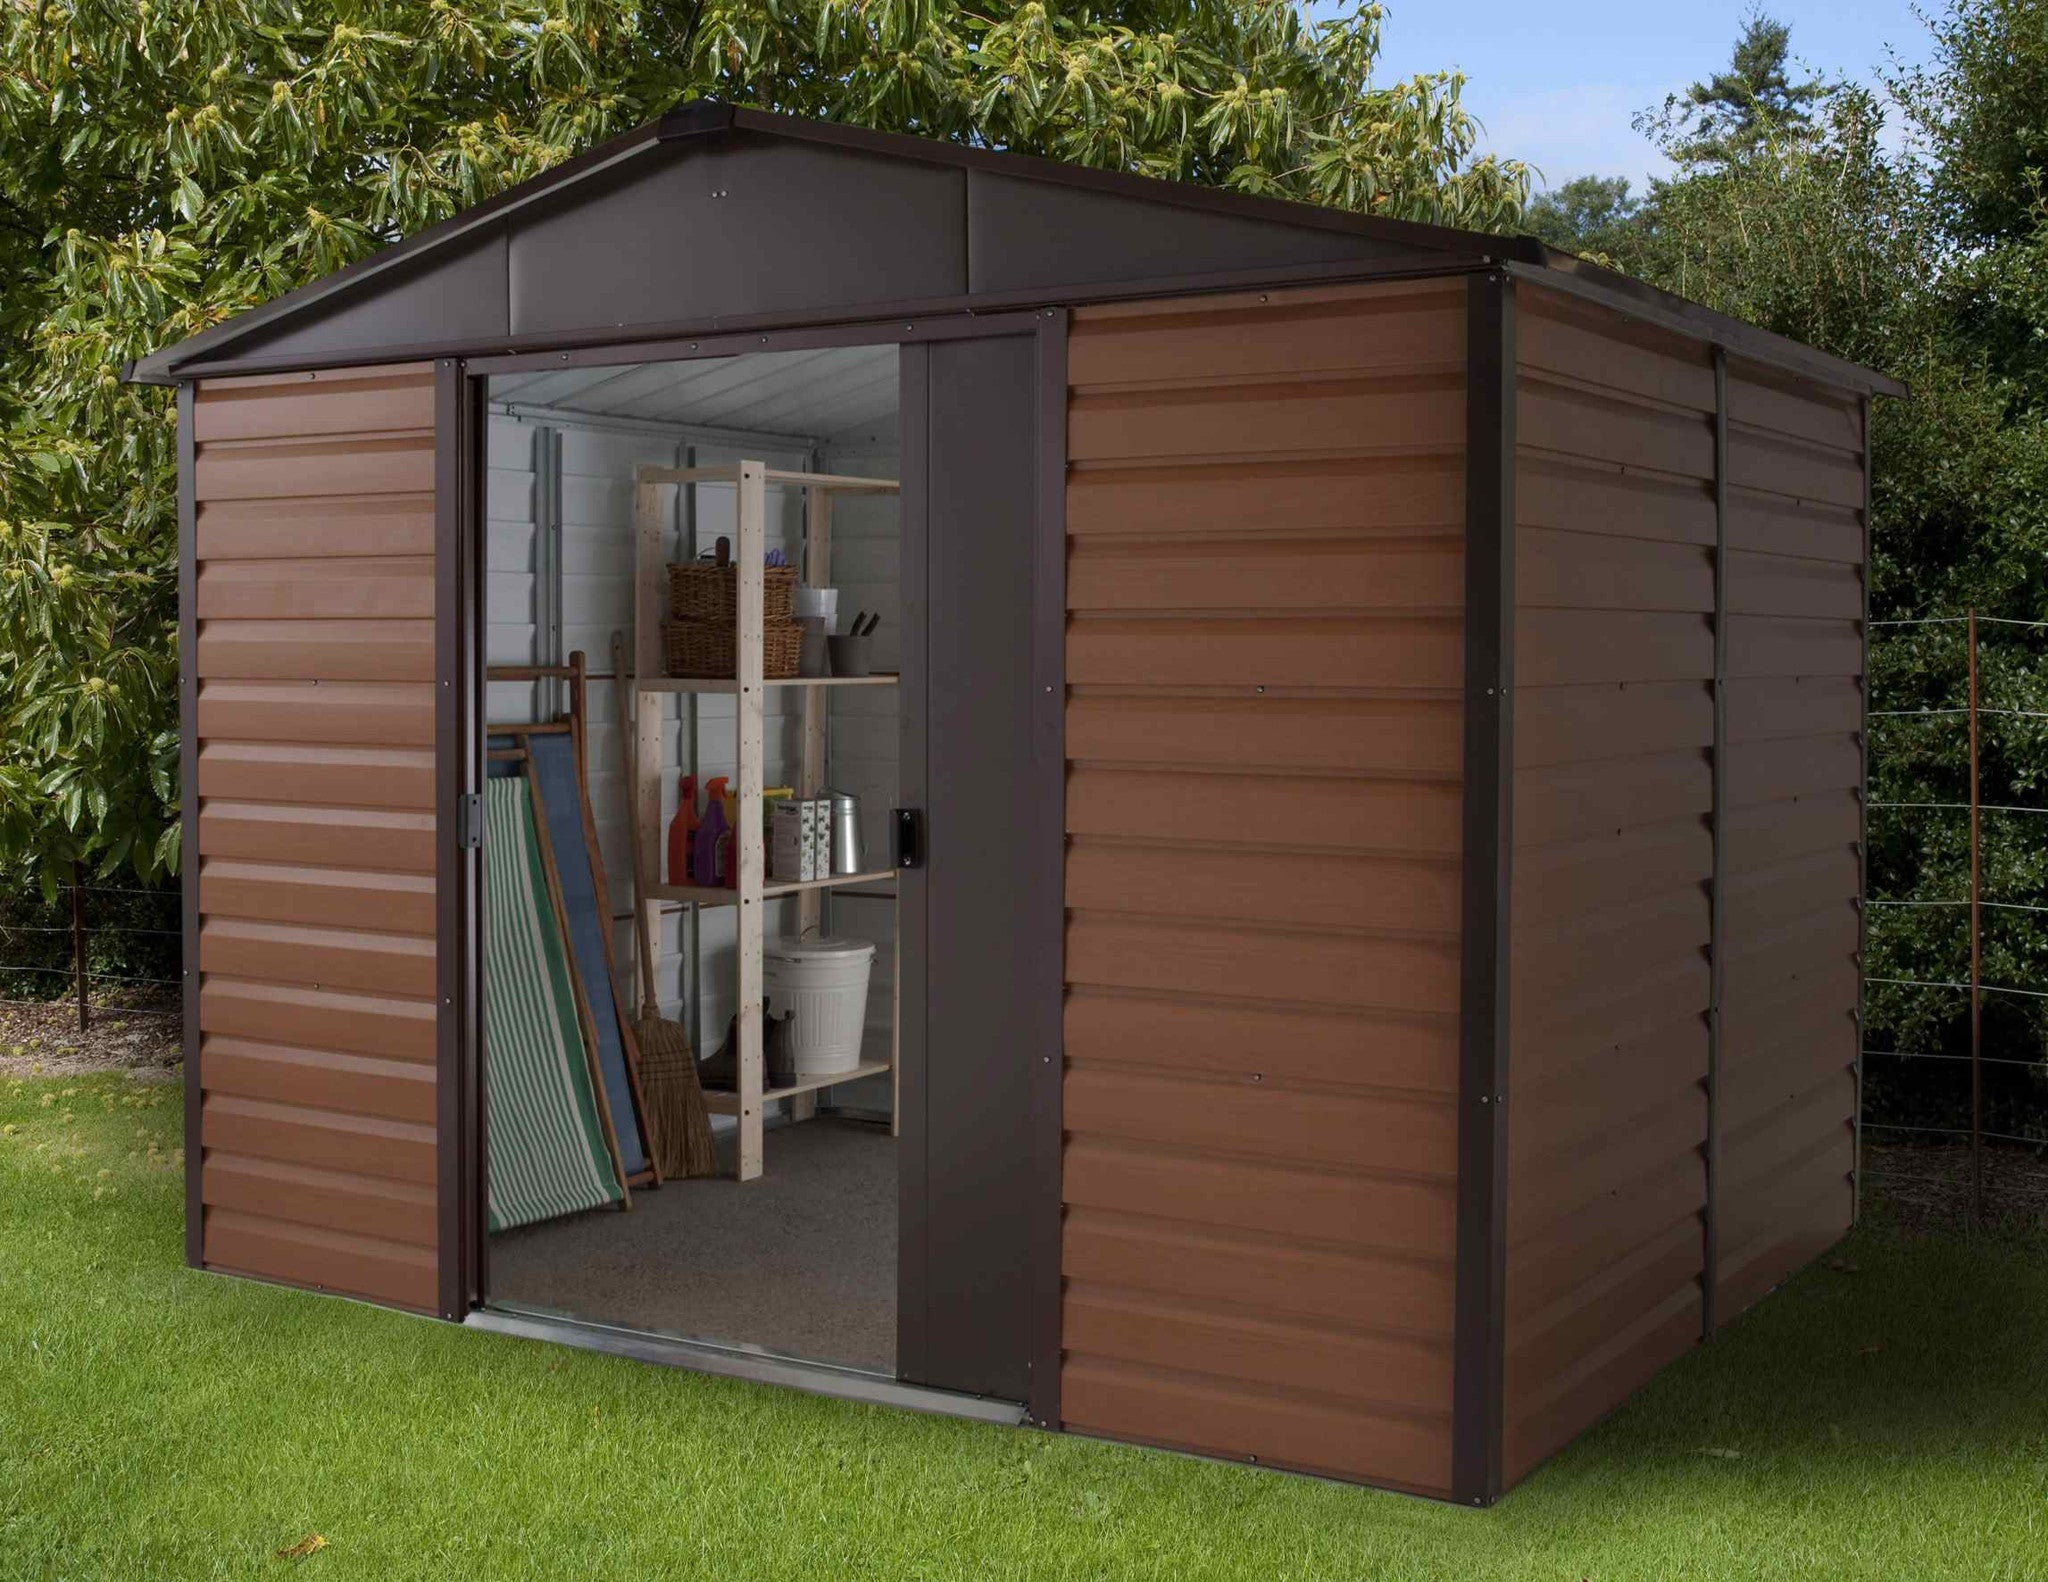 10ft By 8ft Metal Garden Shed 108wgl By Yardmaster Gardenbox